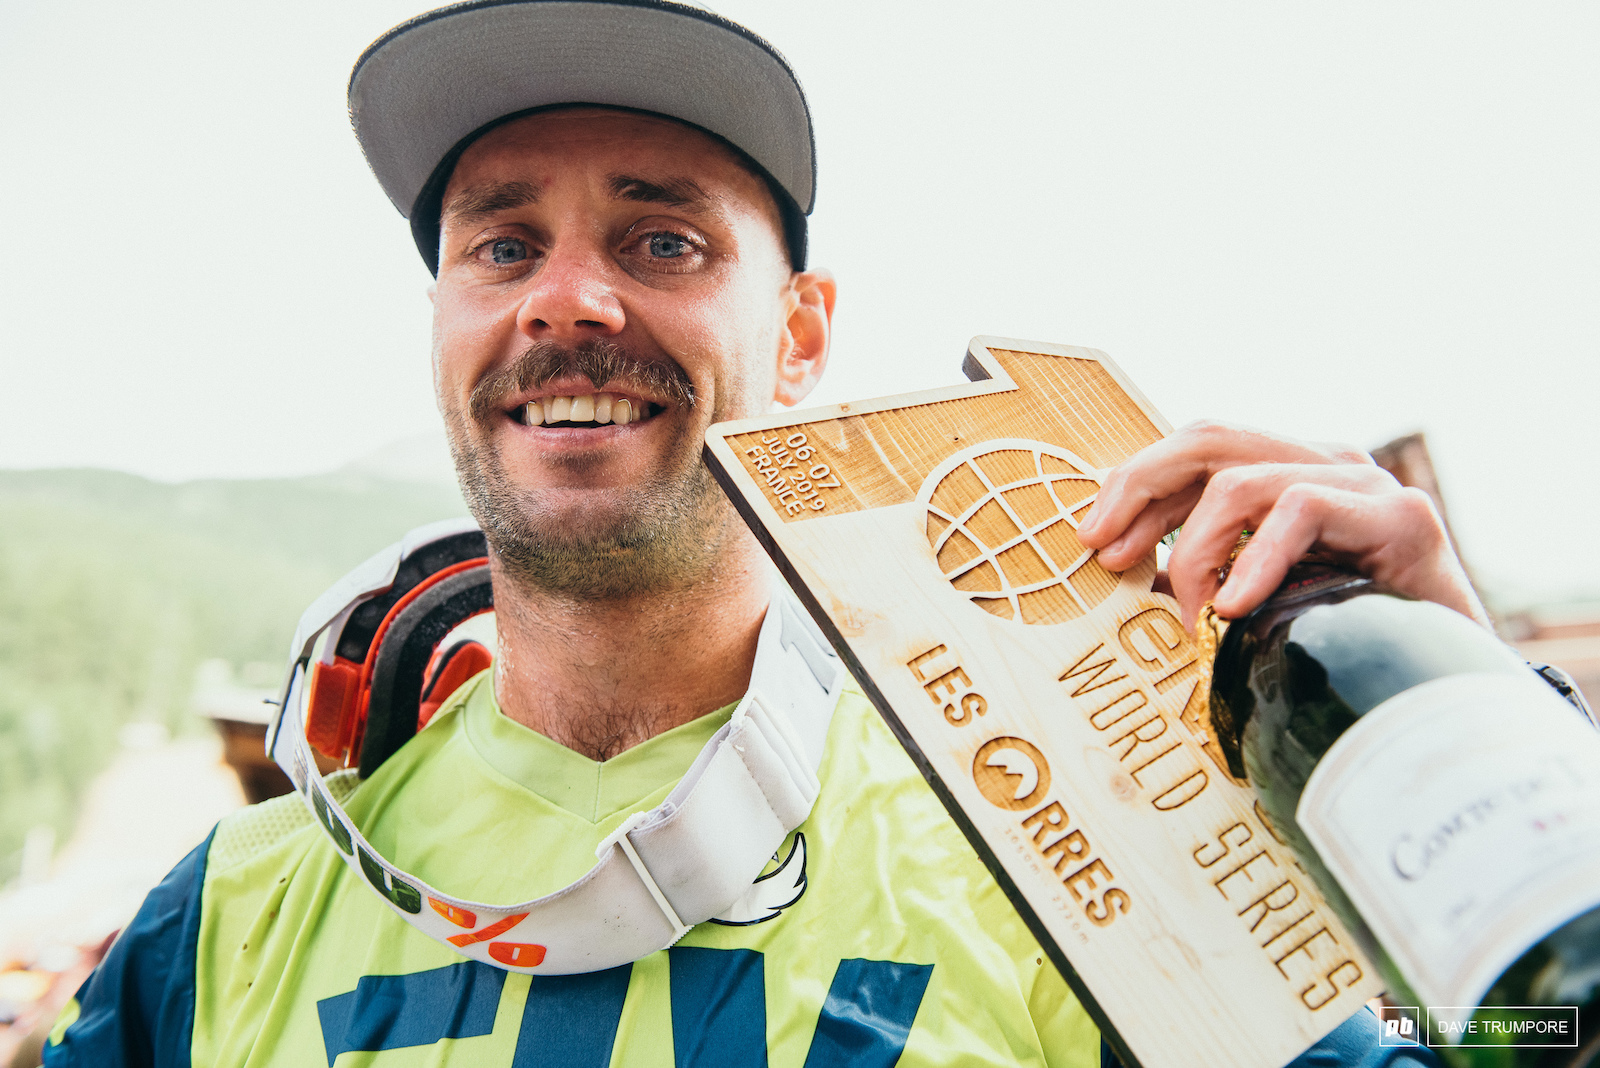 One of the most interesting characters in mountain biking is also one of the most talented. Congrats on a job well done Eddie Masters